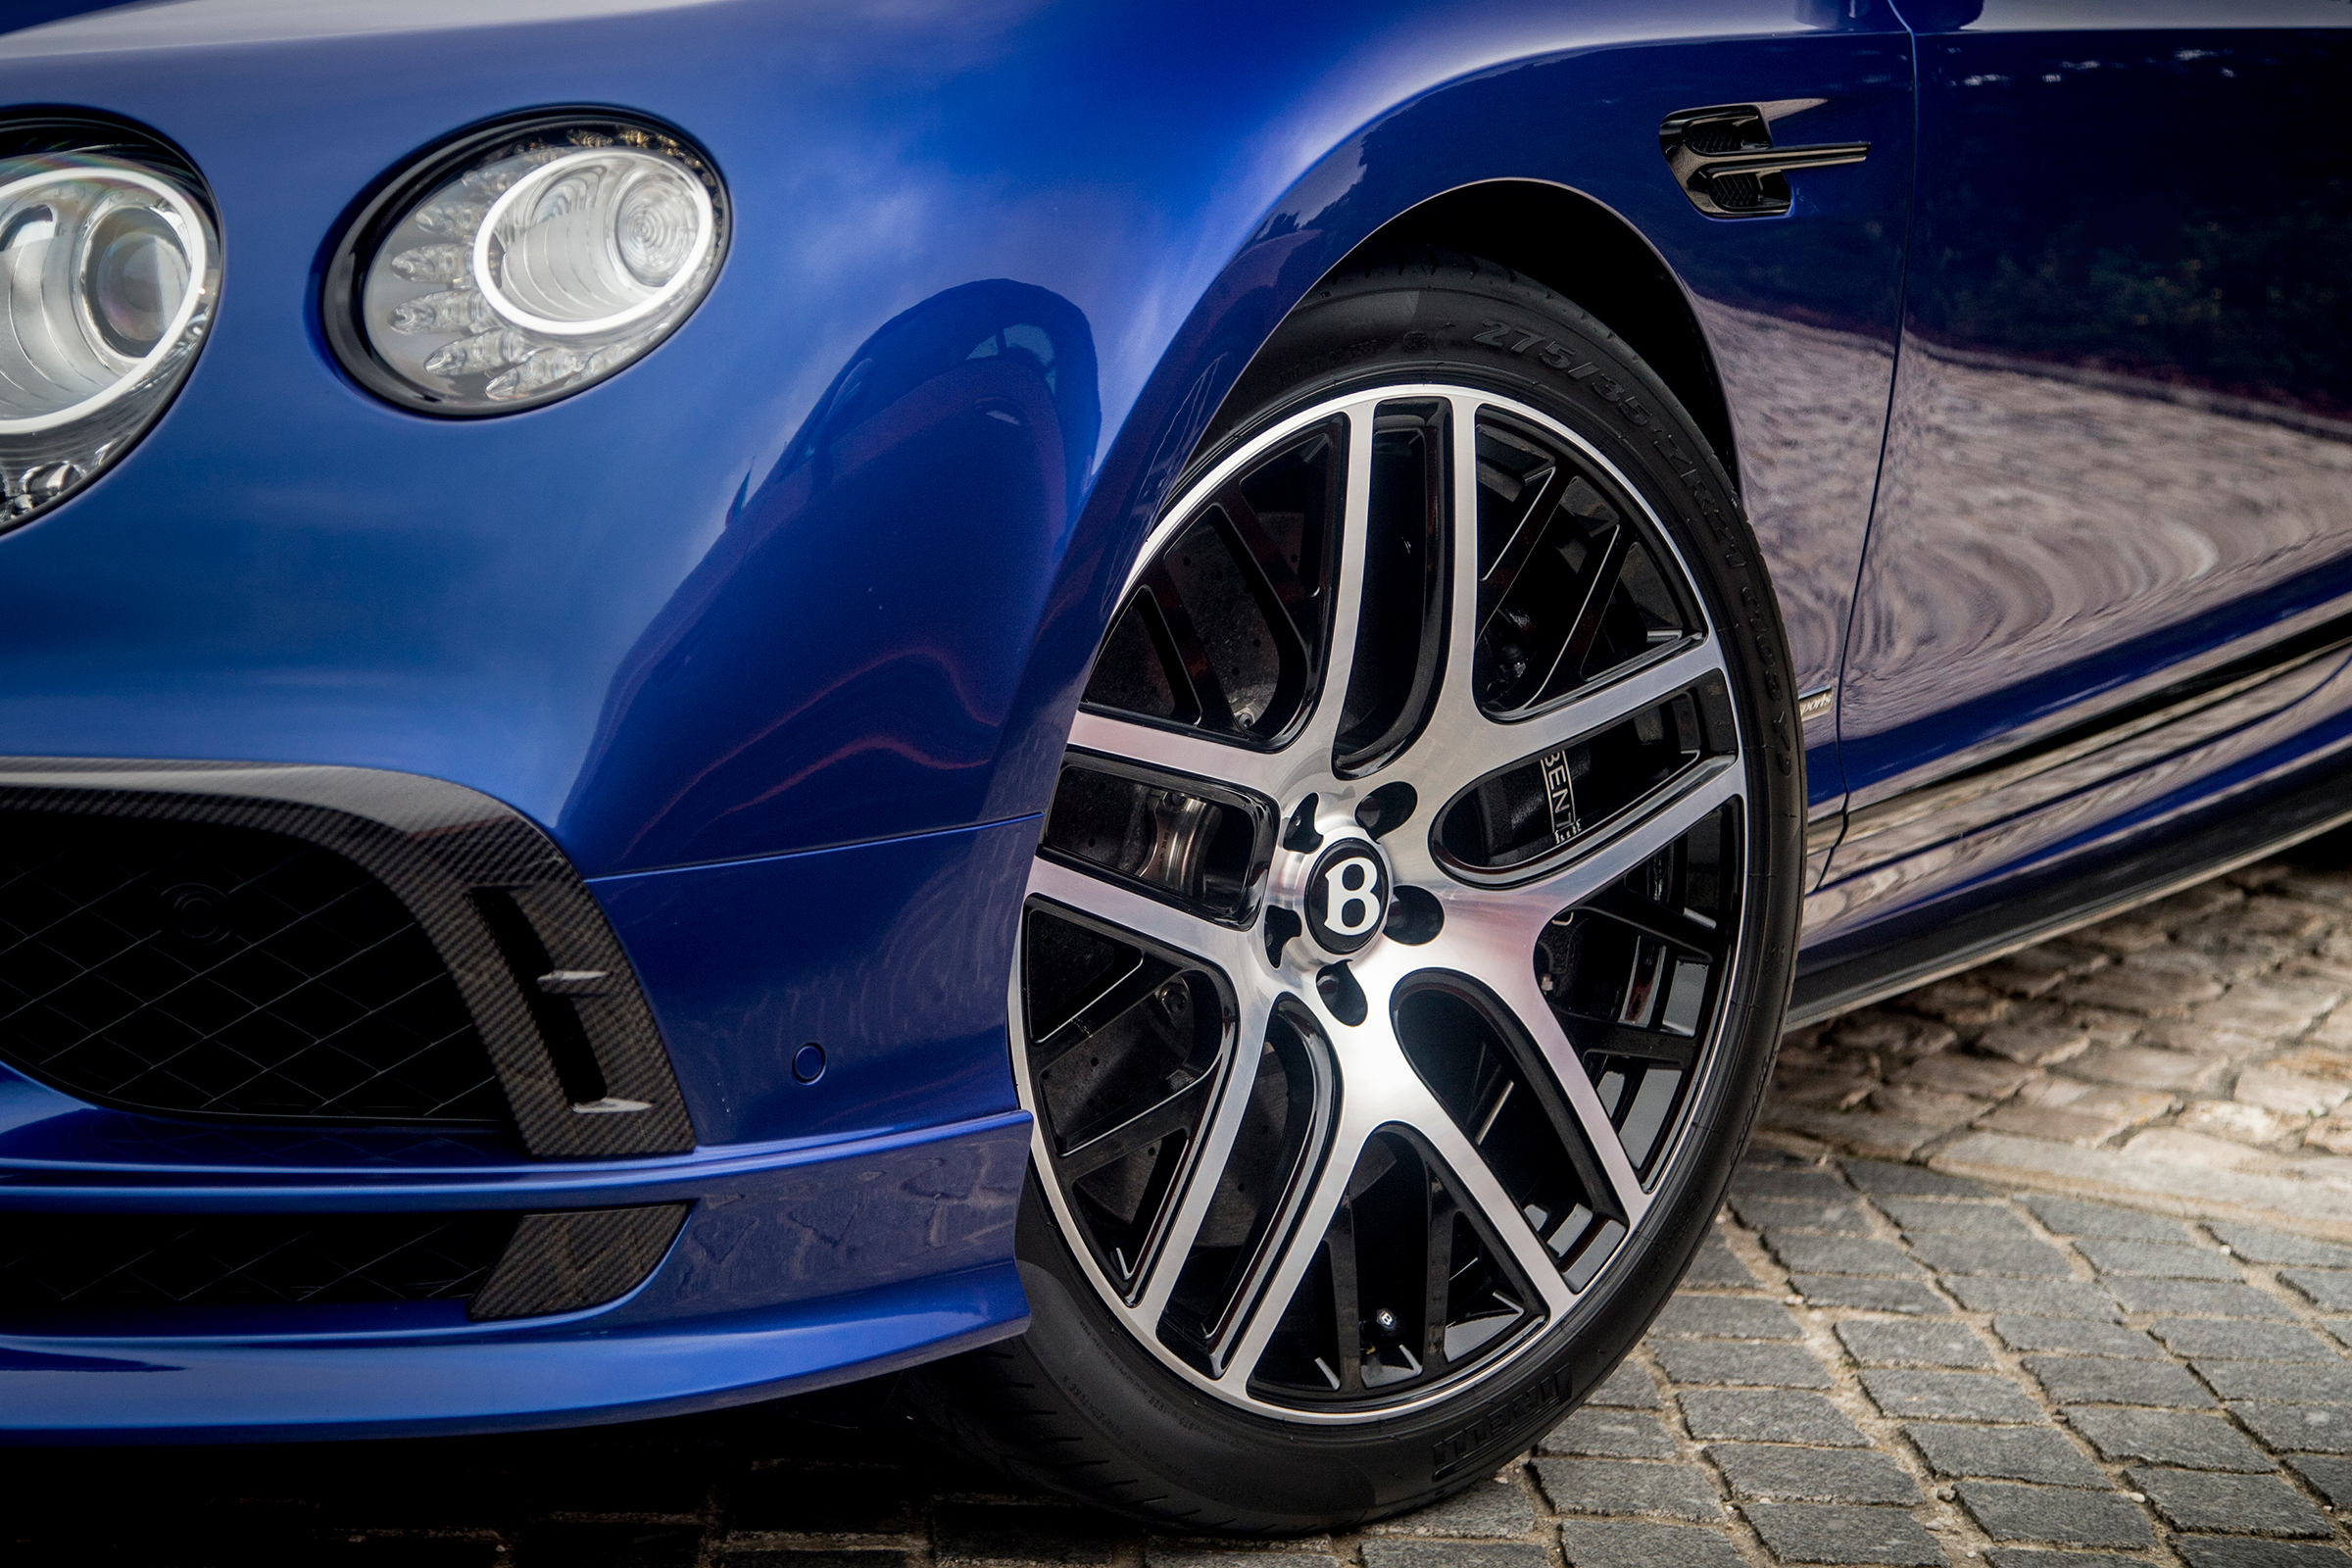 2017 Bentley Continental Supersports Blue Exterior View Wheel Trim (Photo 19 of 31)